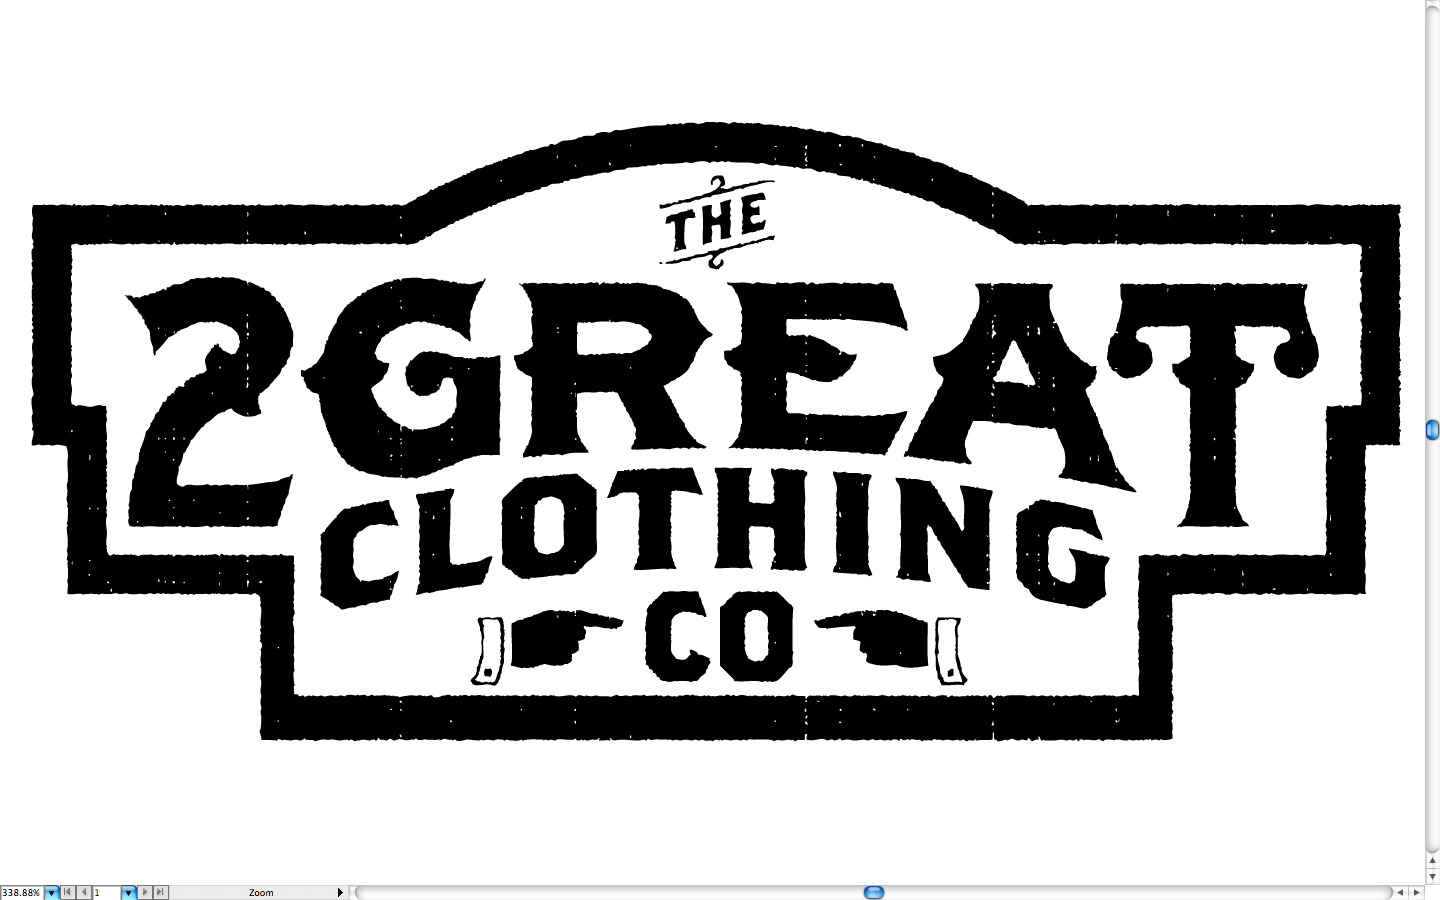 2Great Clothing Co. - image 24 - student project